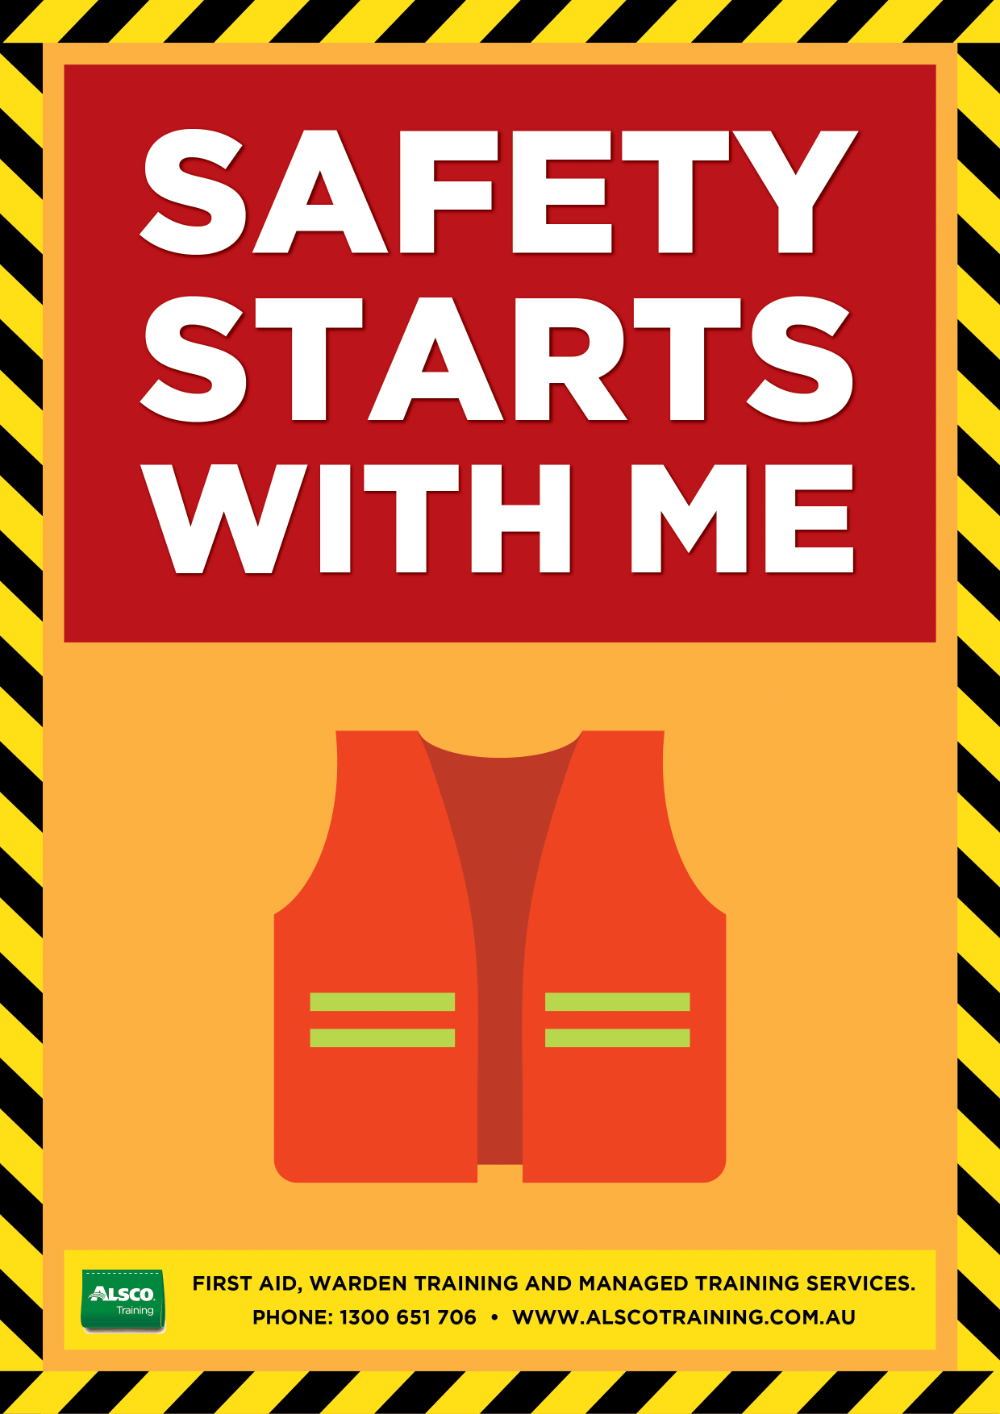 Workplace Safety Posters In 2020 Health And Safety Poster Safety Posters Safety Quotes